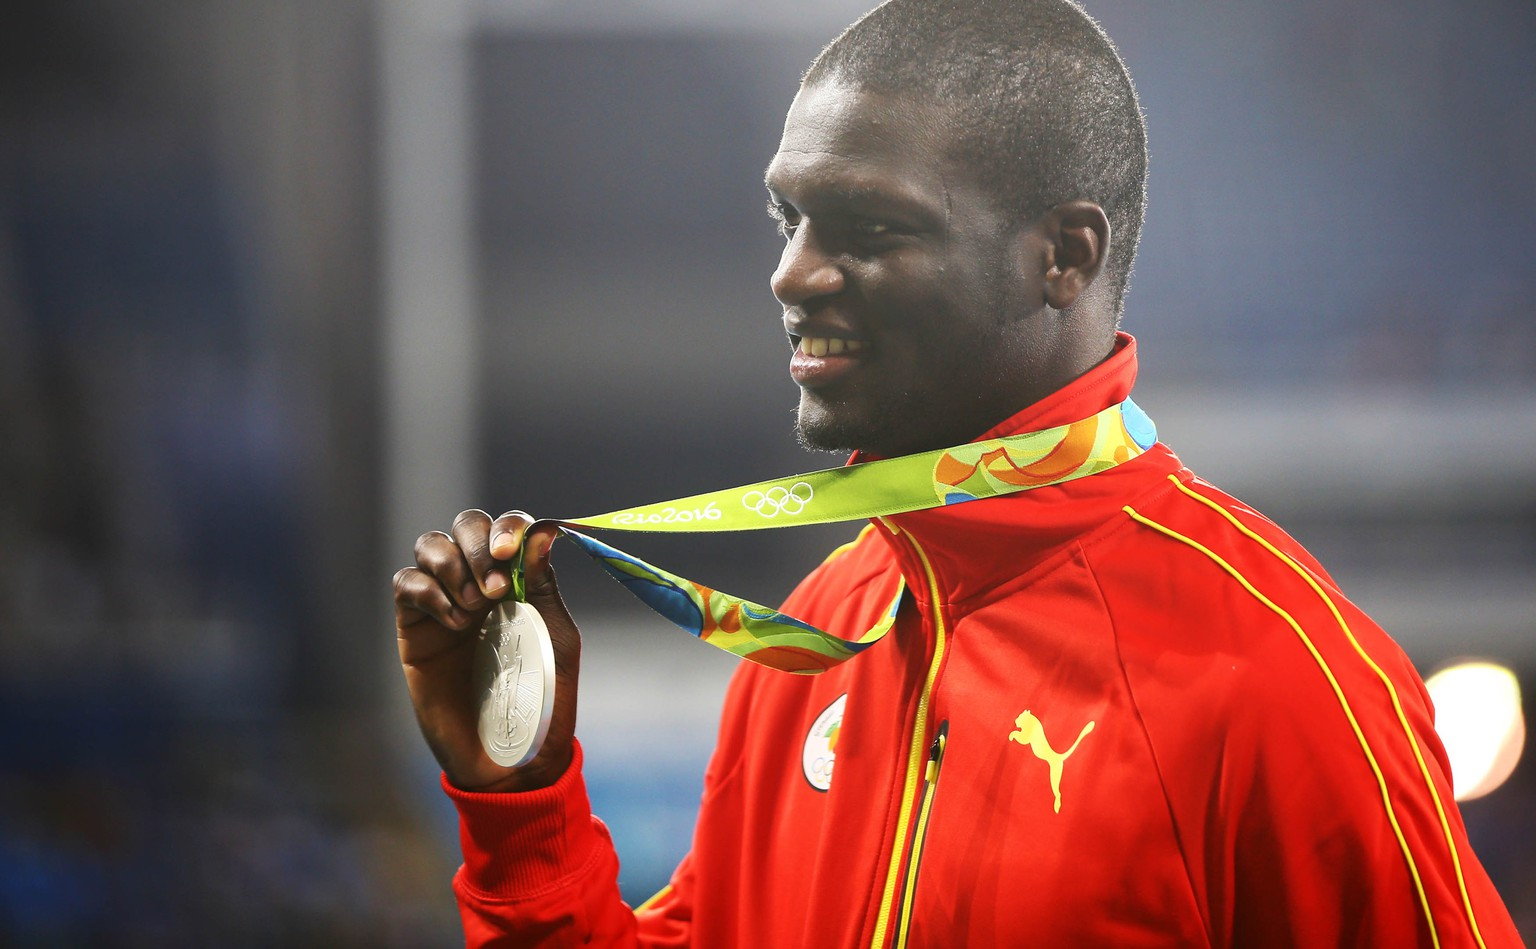 2016 Rio Olympics - Athletics - Victory Ceremony - Men's 400m Victory Ceremony - Olympic Stadium - Rio de Janeiro, Brazil - 15/08/2016. Silver medalist Kirani James (GRN) of Grenada reacts after receiving his medal.  REUTERS/Leonhard Foeger  FOR EDITORIAL USE ONLY. NOT FOR SALE FOR MARKETING OR ADVERTISING CAMPAIGNS.